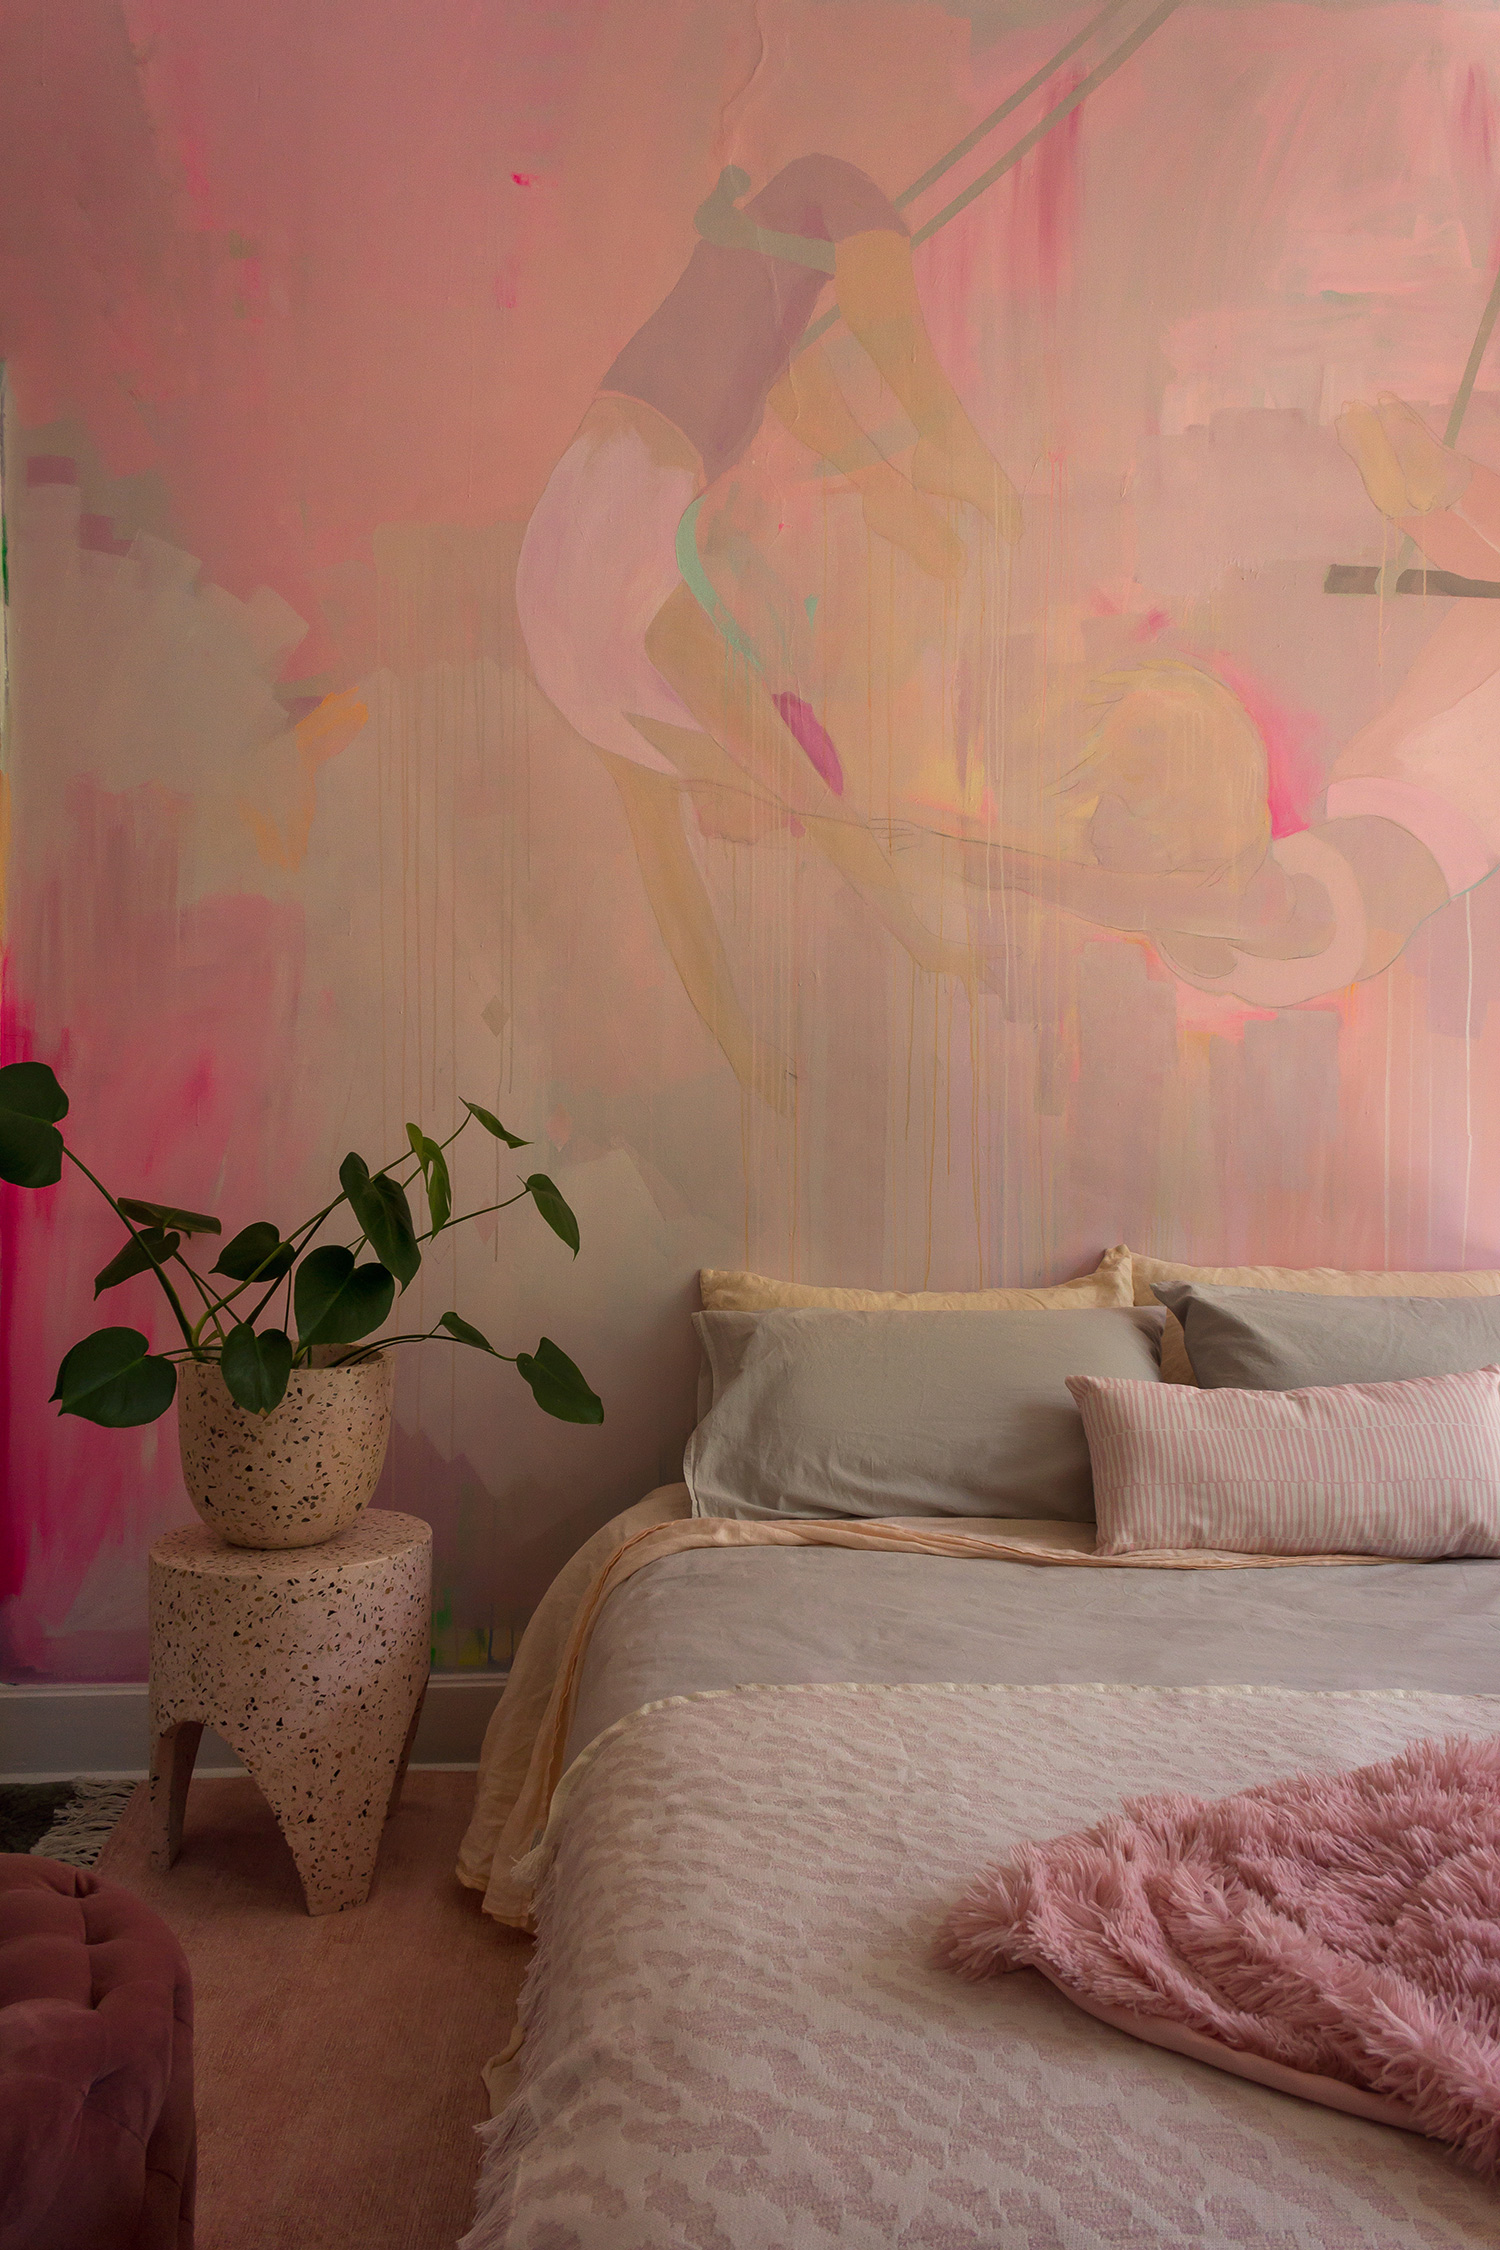 Romantic pink bedroom featuring a unique hand painted mural of two trapeze artists. The bedroom is styled with pastel linen, plants and pink terrazzo stump.